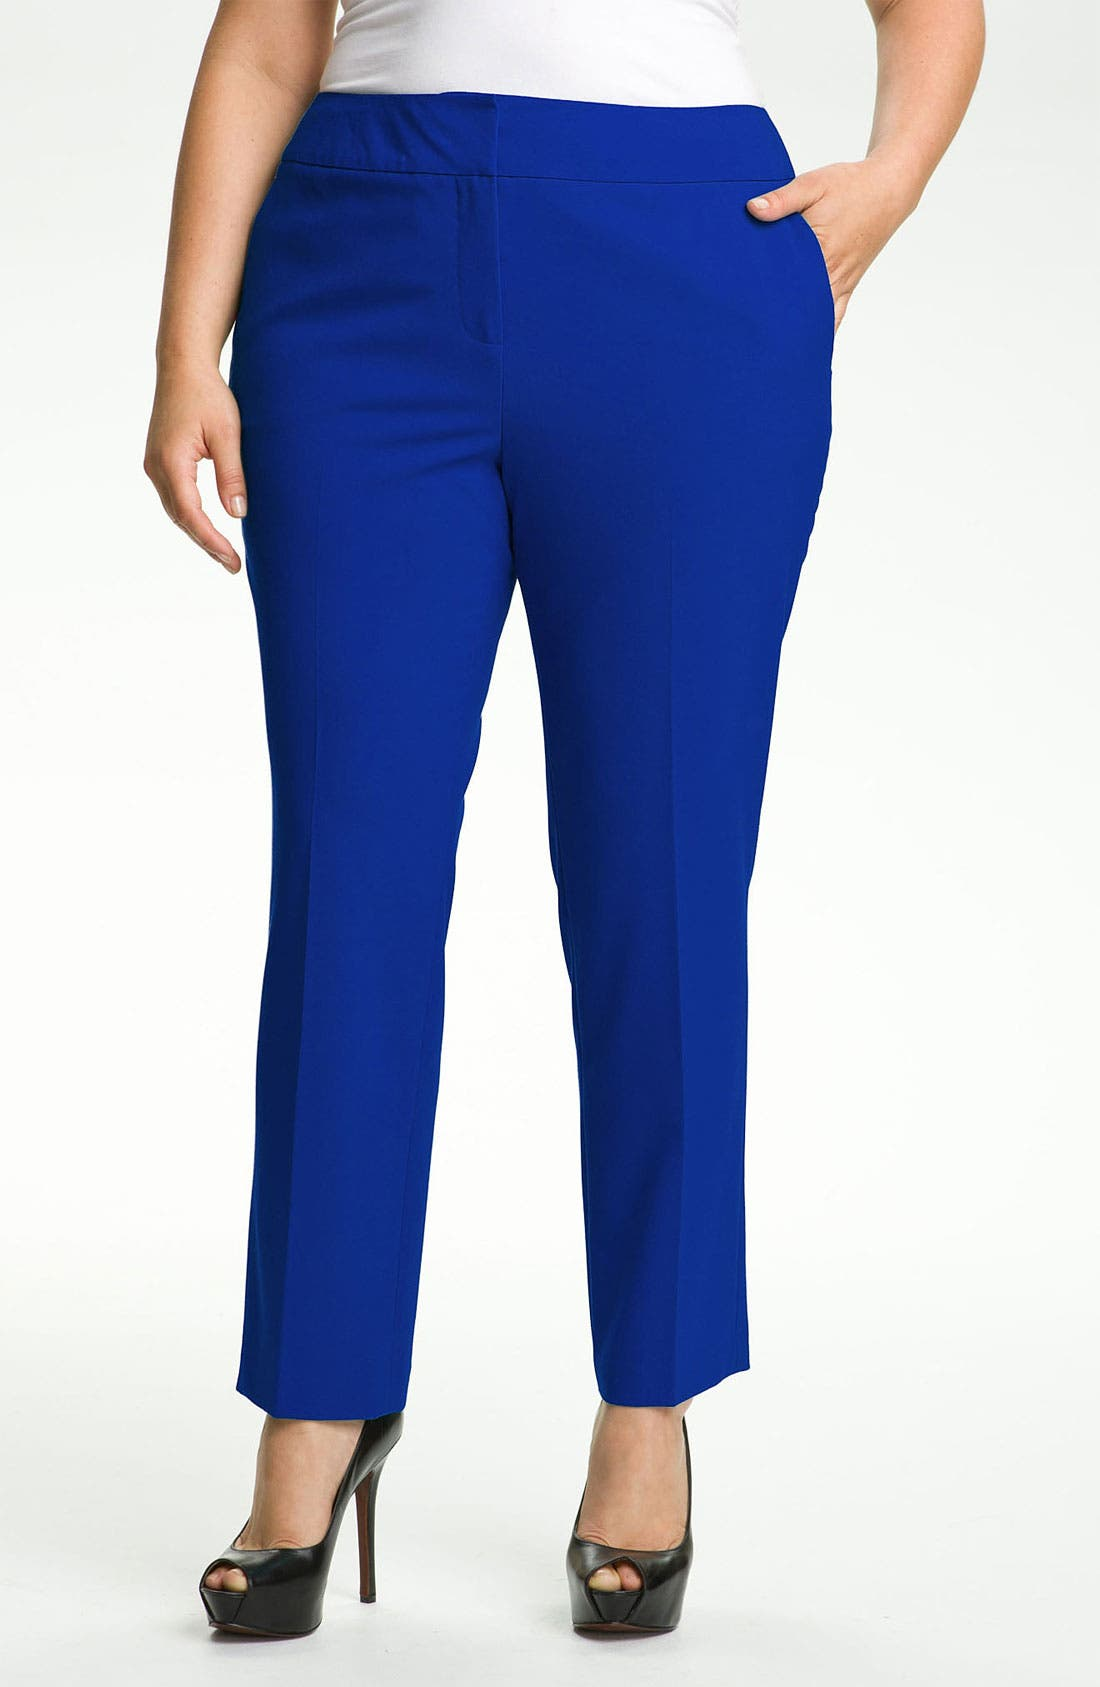 Alternate Image 1 Selected - Vince Camuto Ankle Pants (Plus Size)